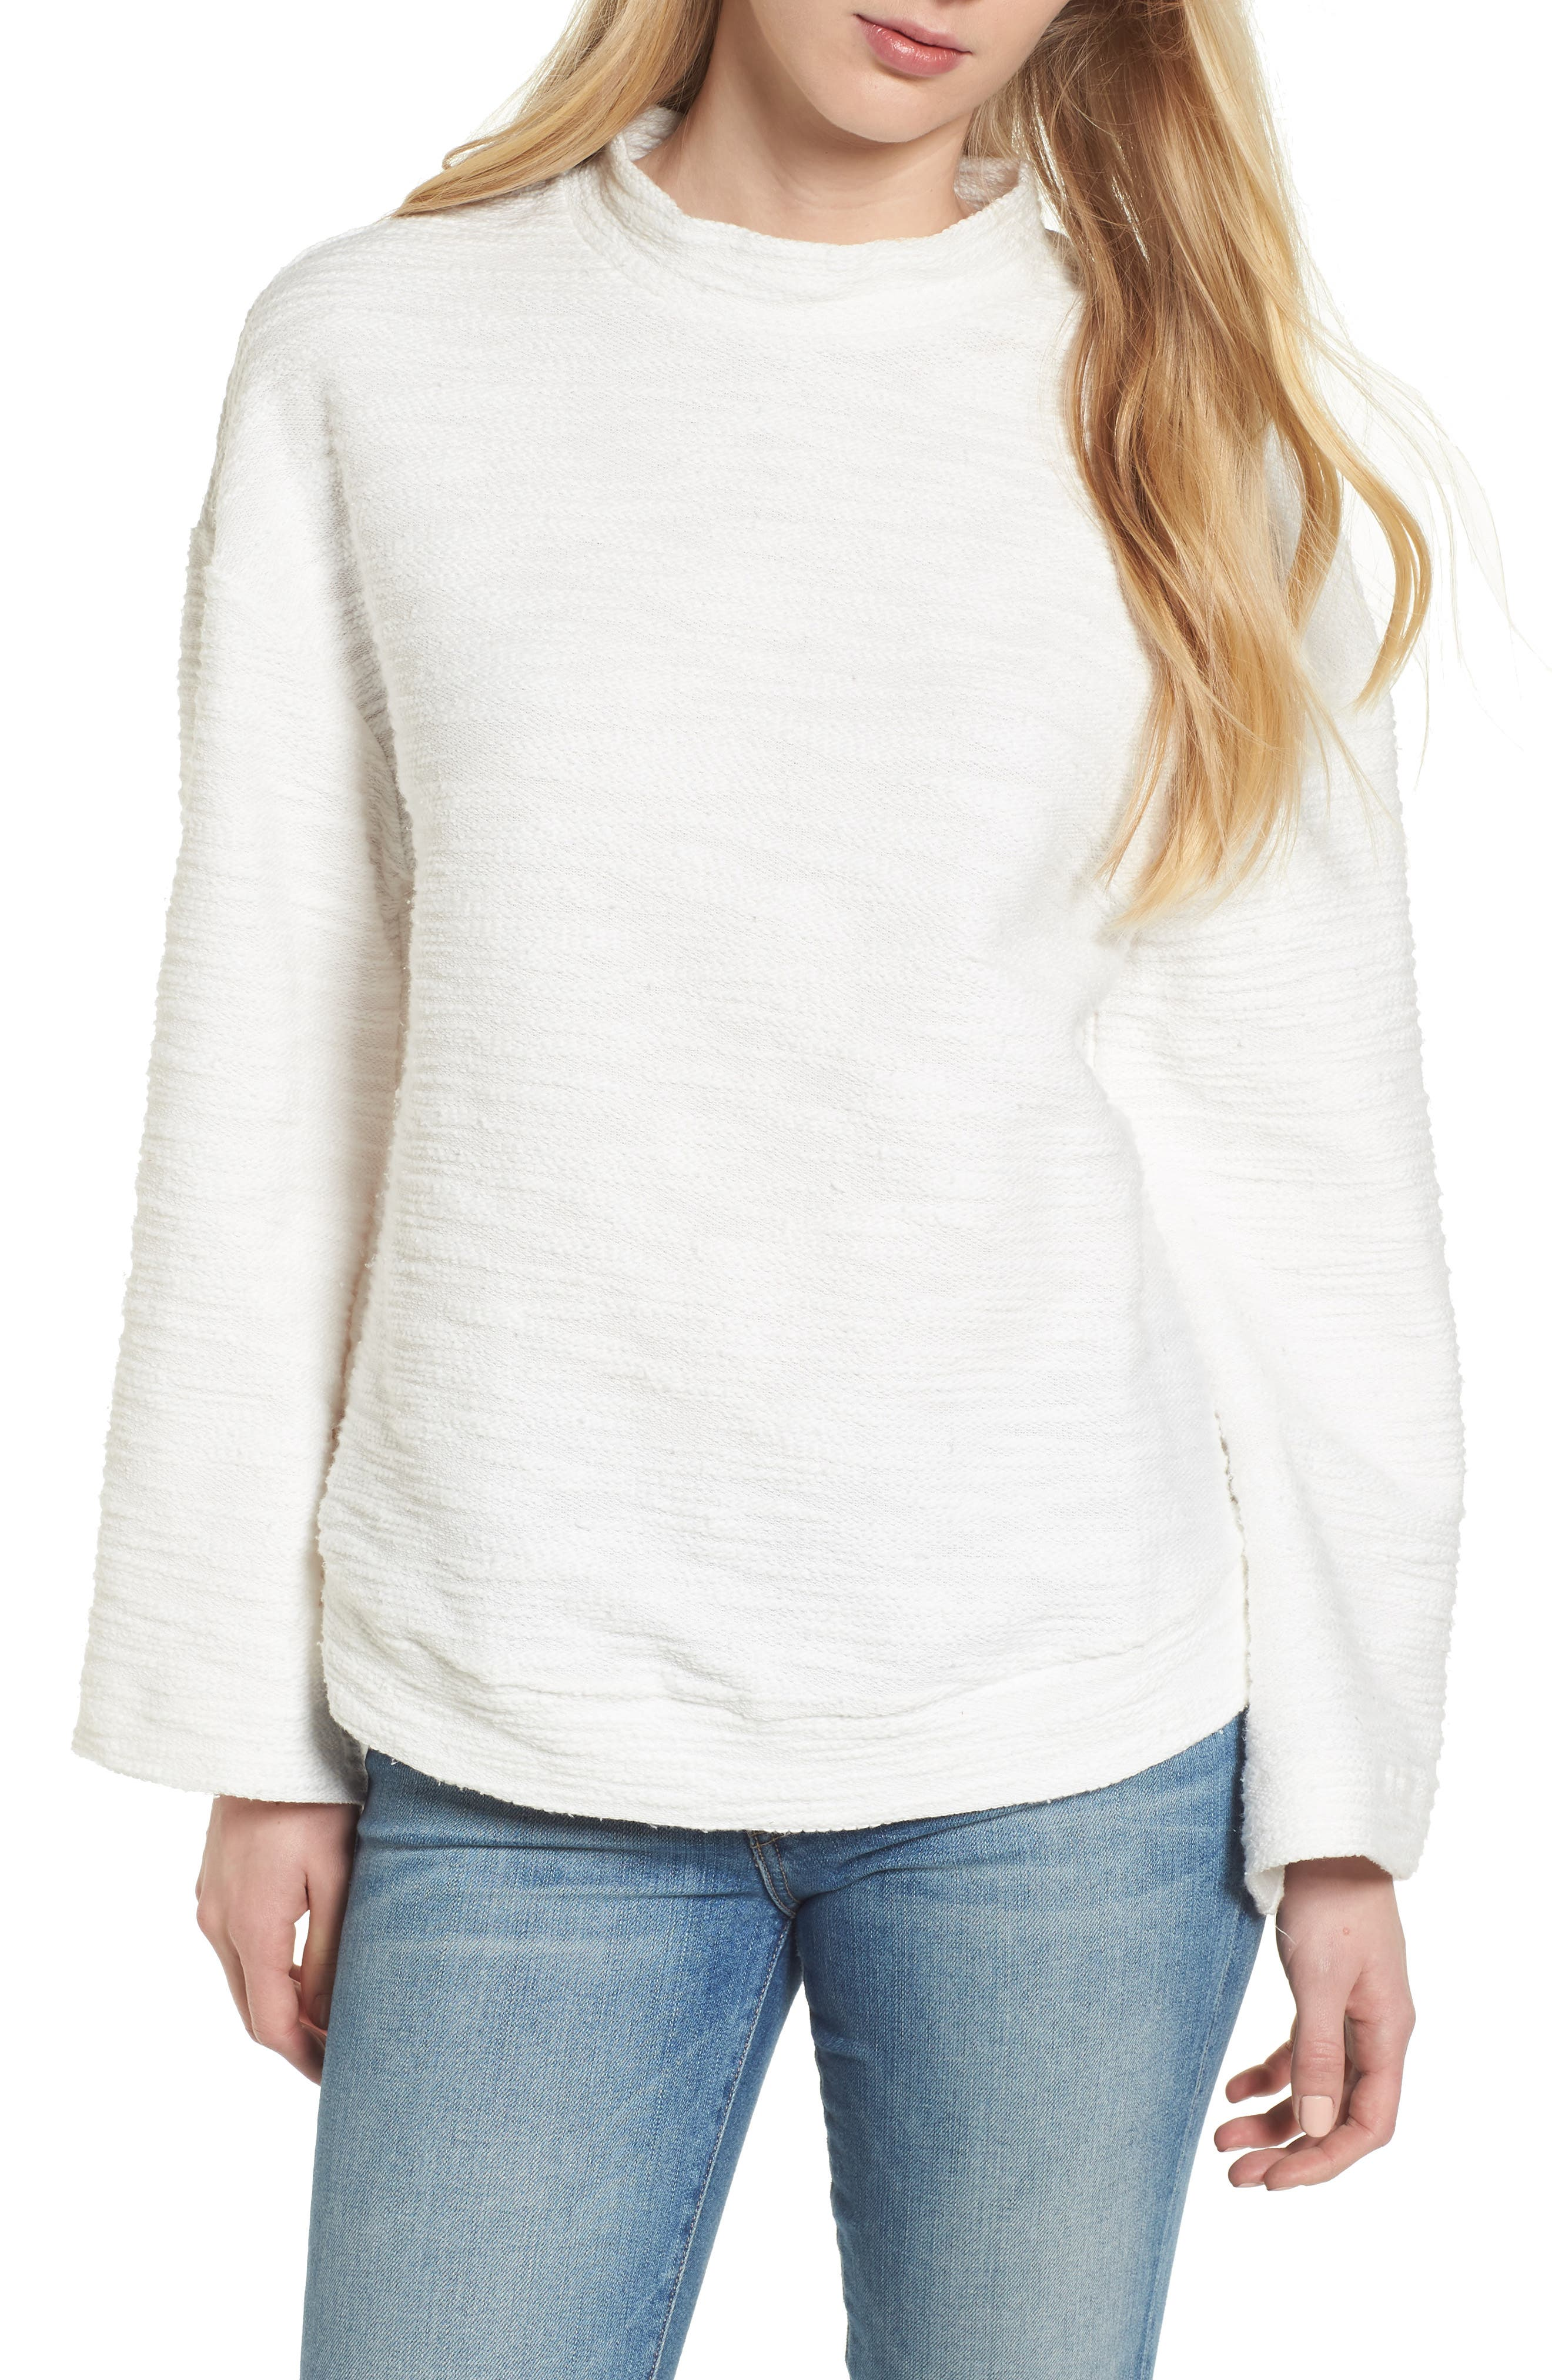 Bishop + Young No Sweat Pullover,                             Main thumbnail 1, color,                             Ivory